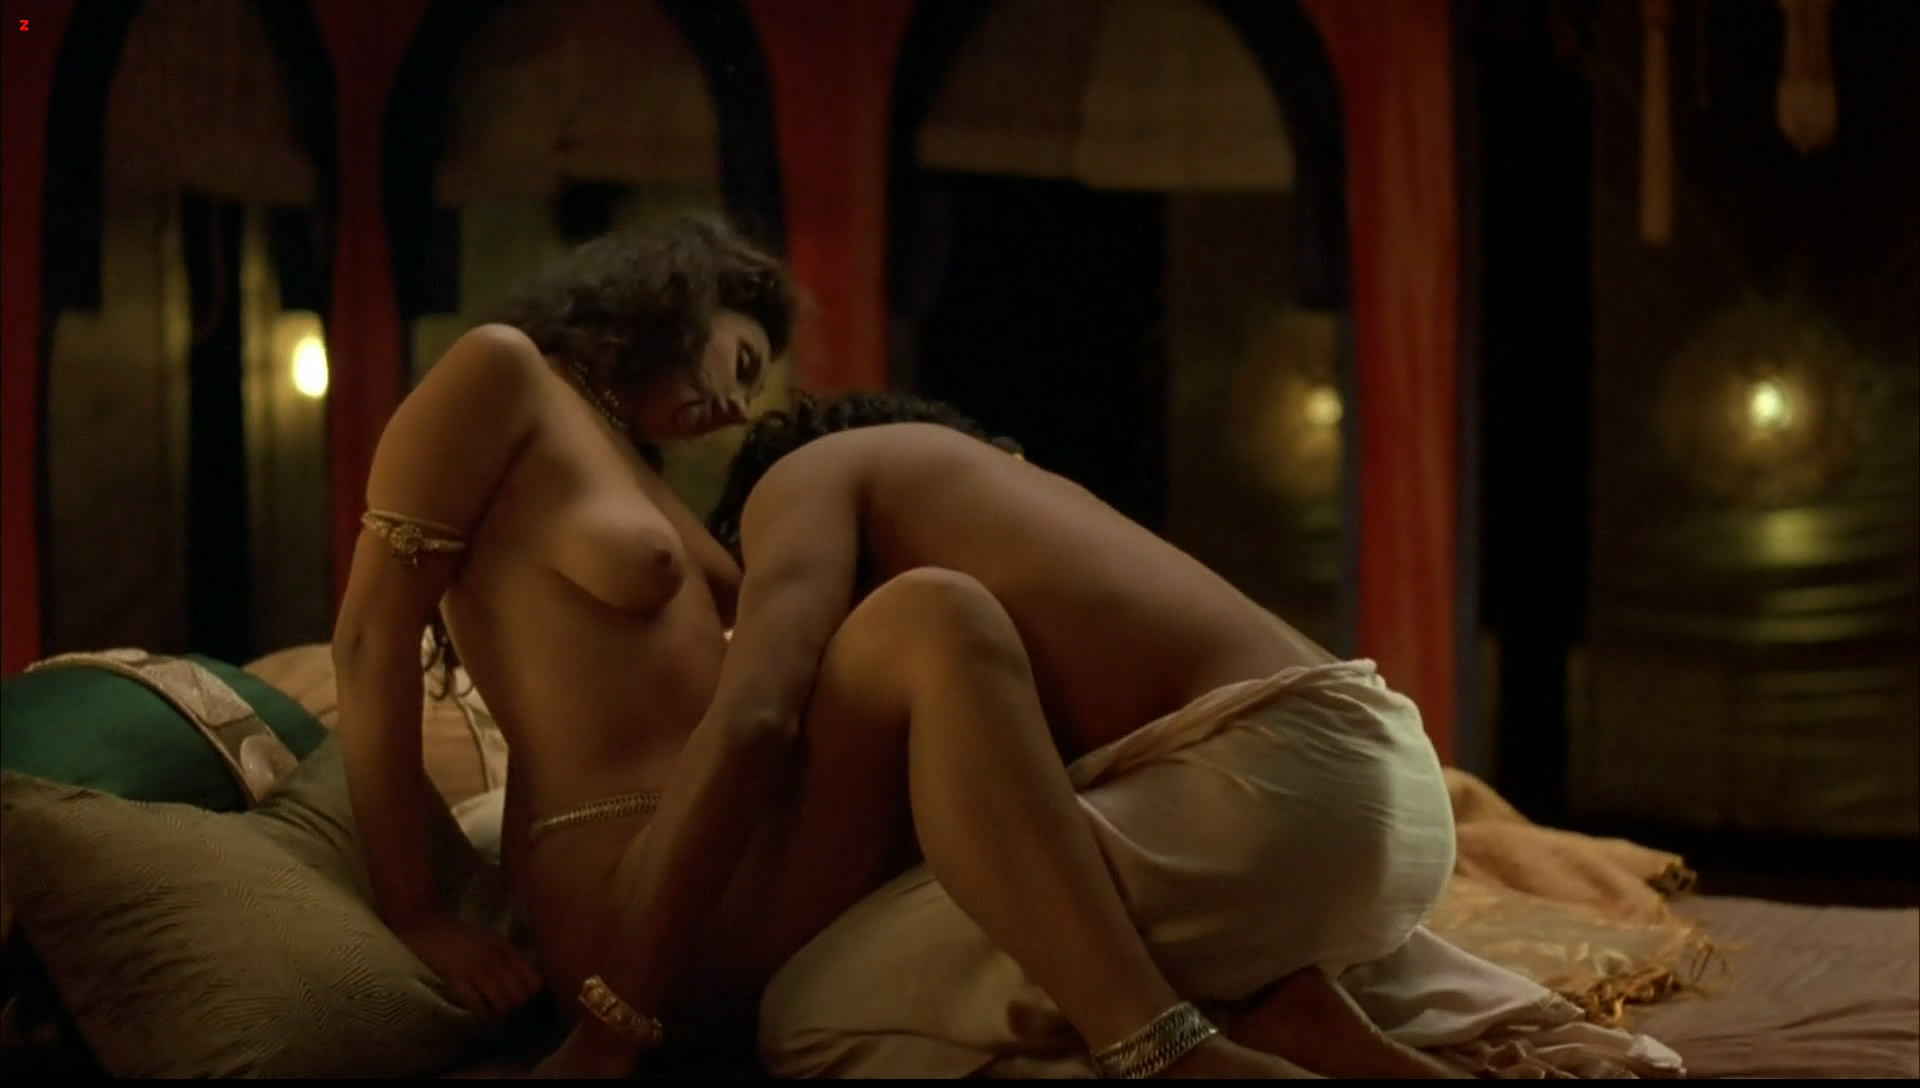 Animation indira nude varma